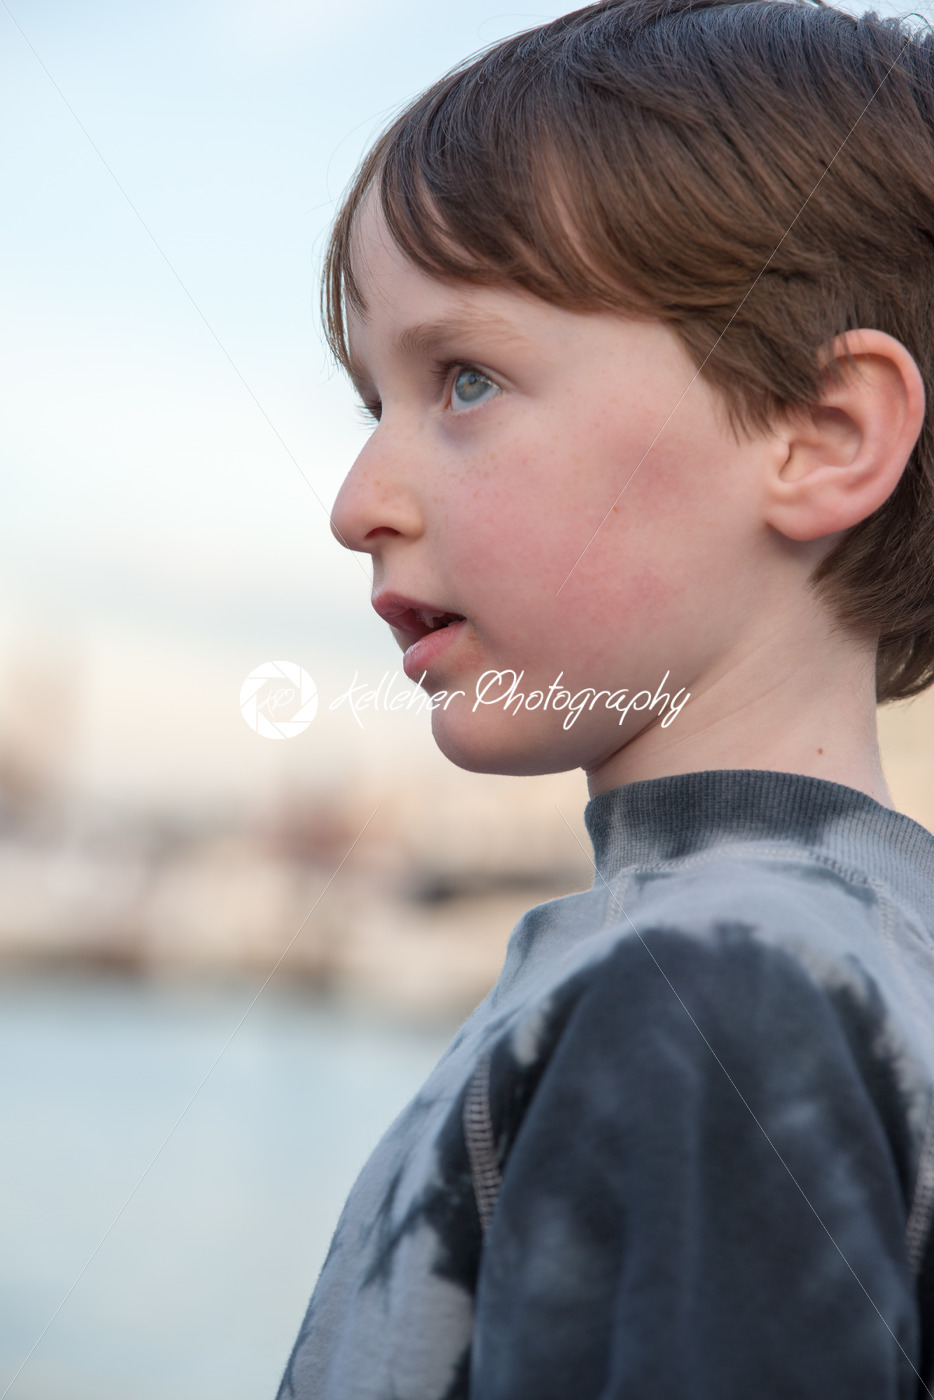 Young boy looking off into the distance - Kelleher Photography Store